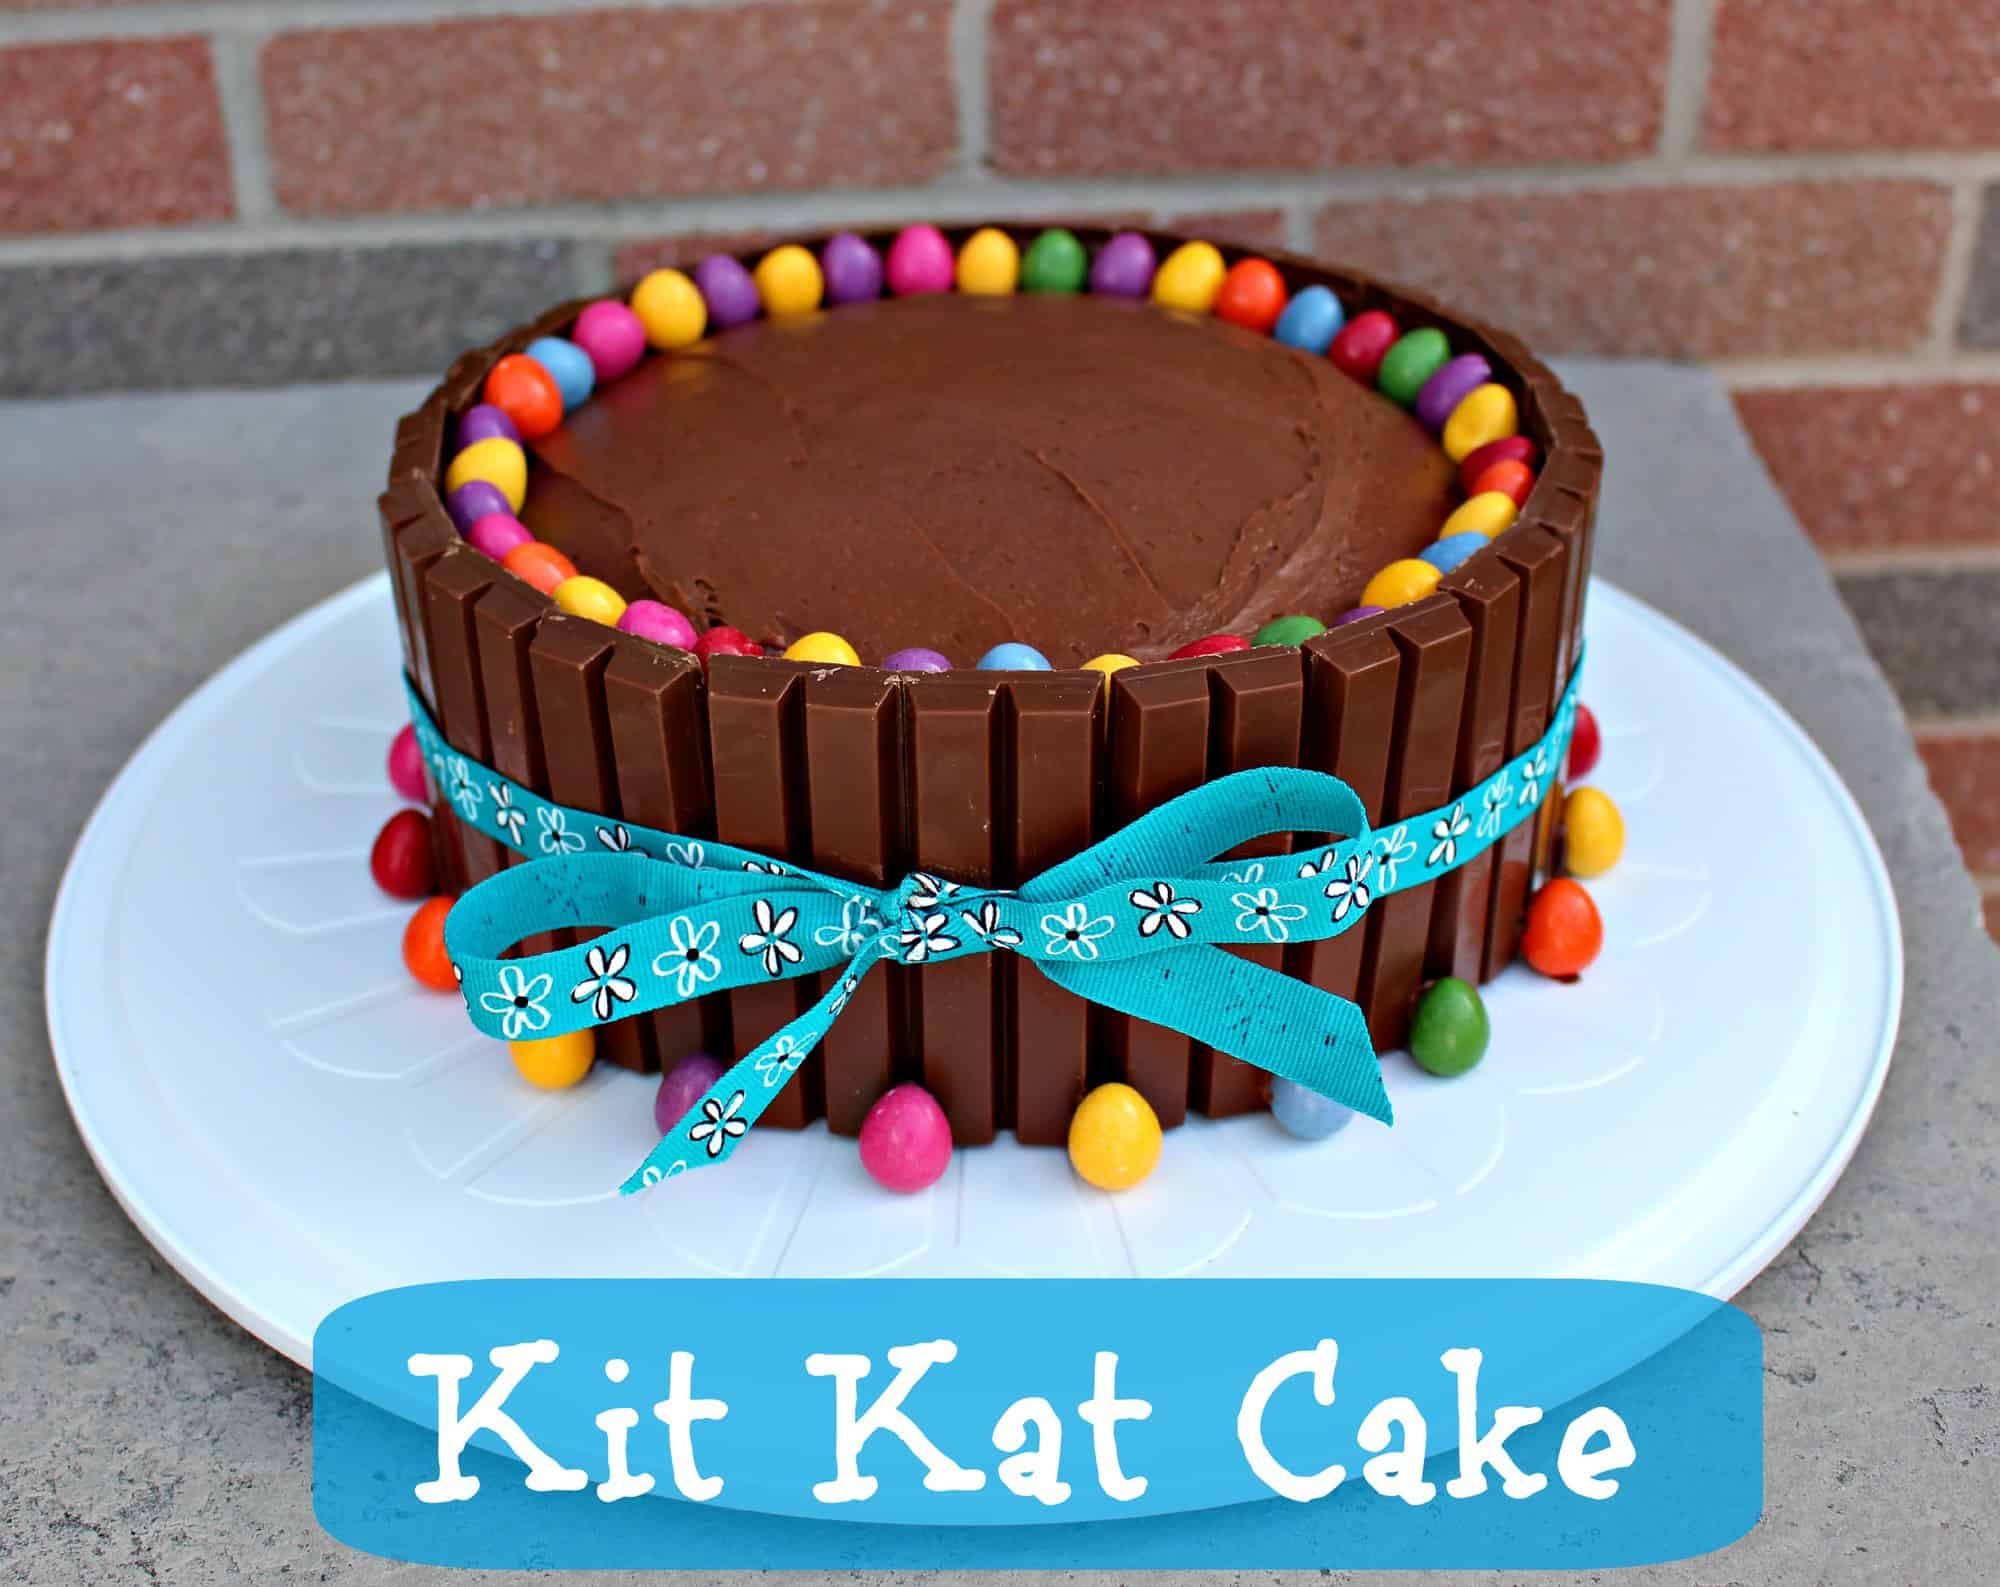 Easy Birthday Cake Recipe  Easy Birthday Cake Ideas – Kit Kat Cake Recipe Little